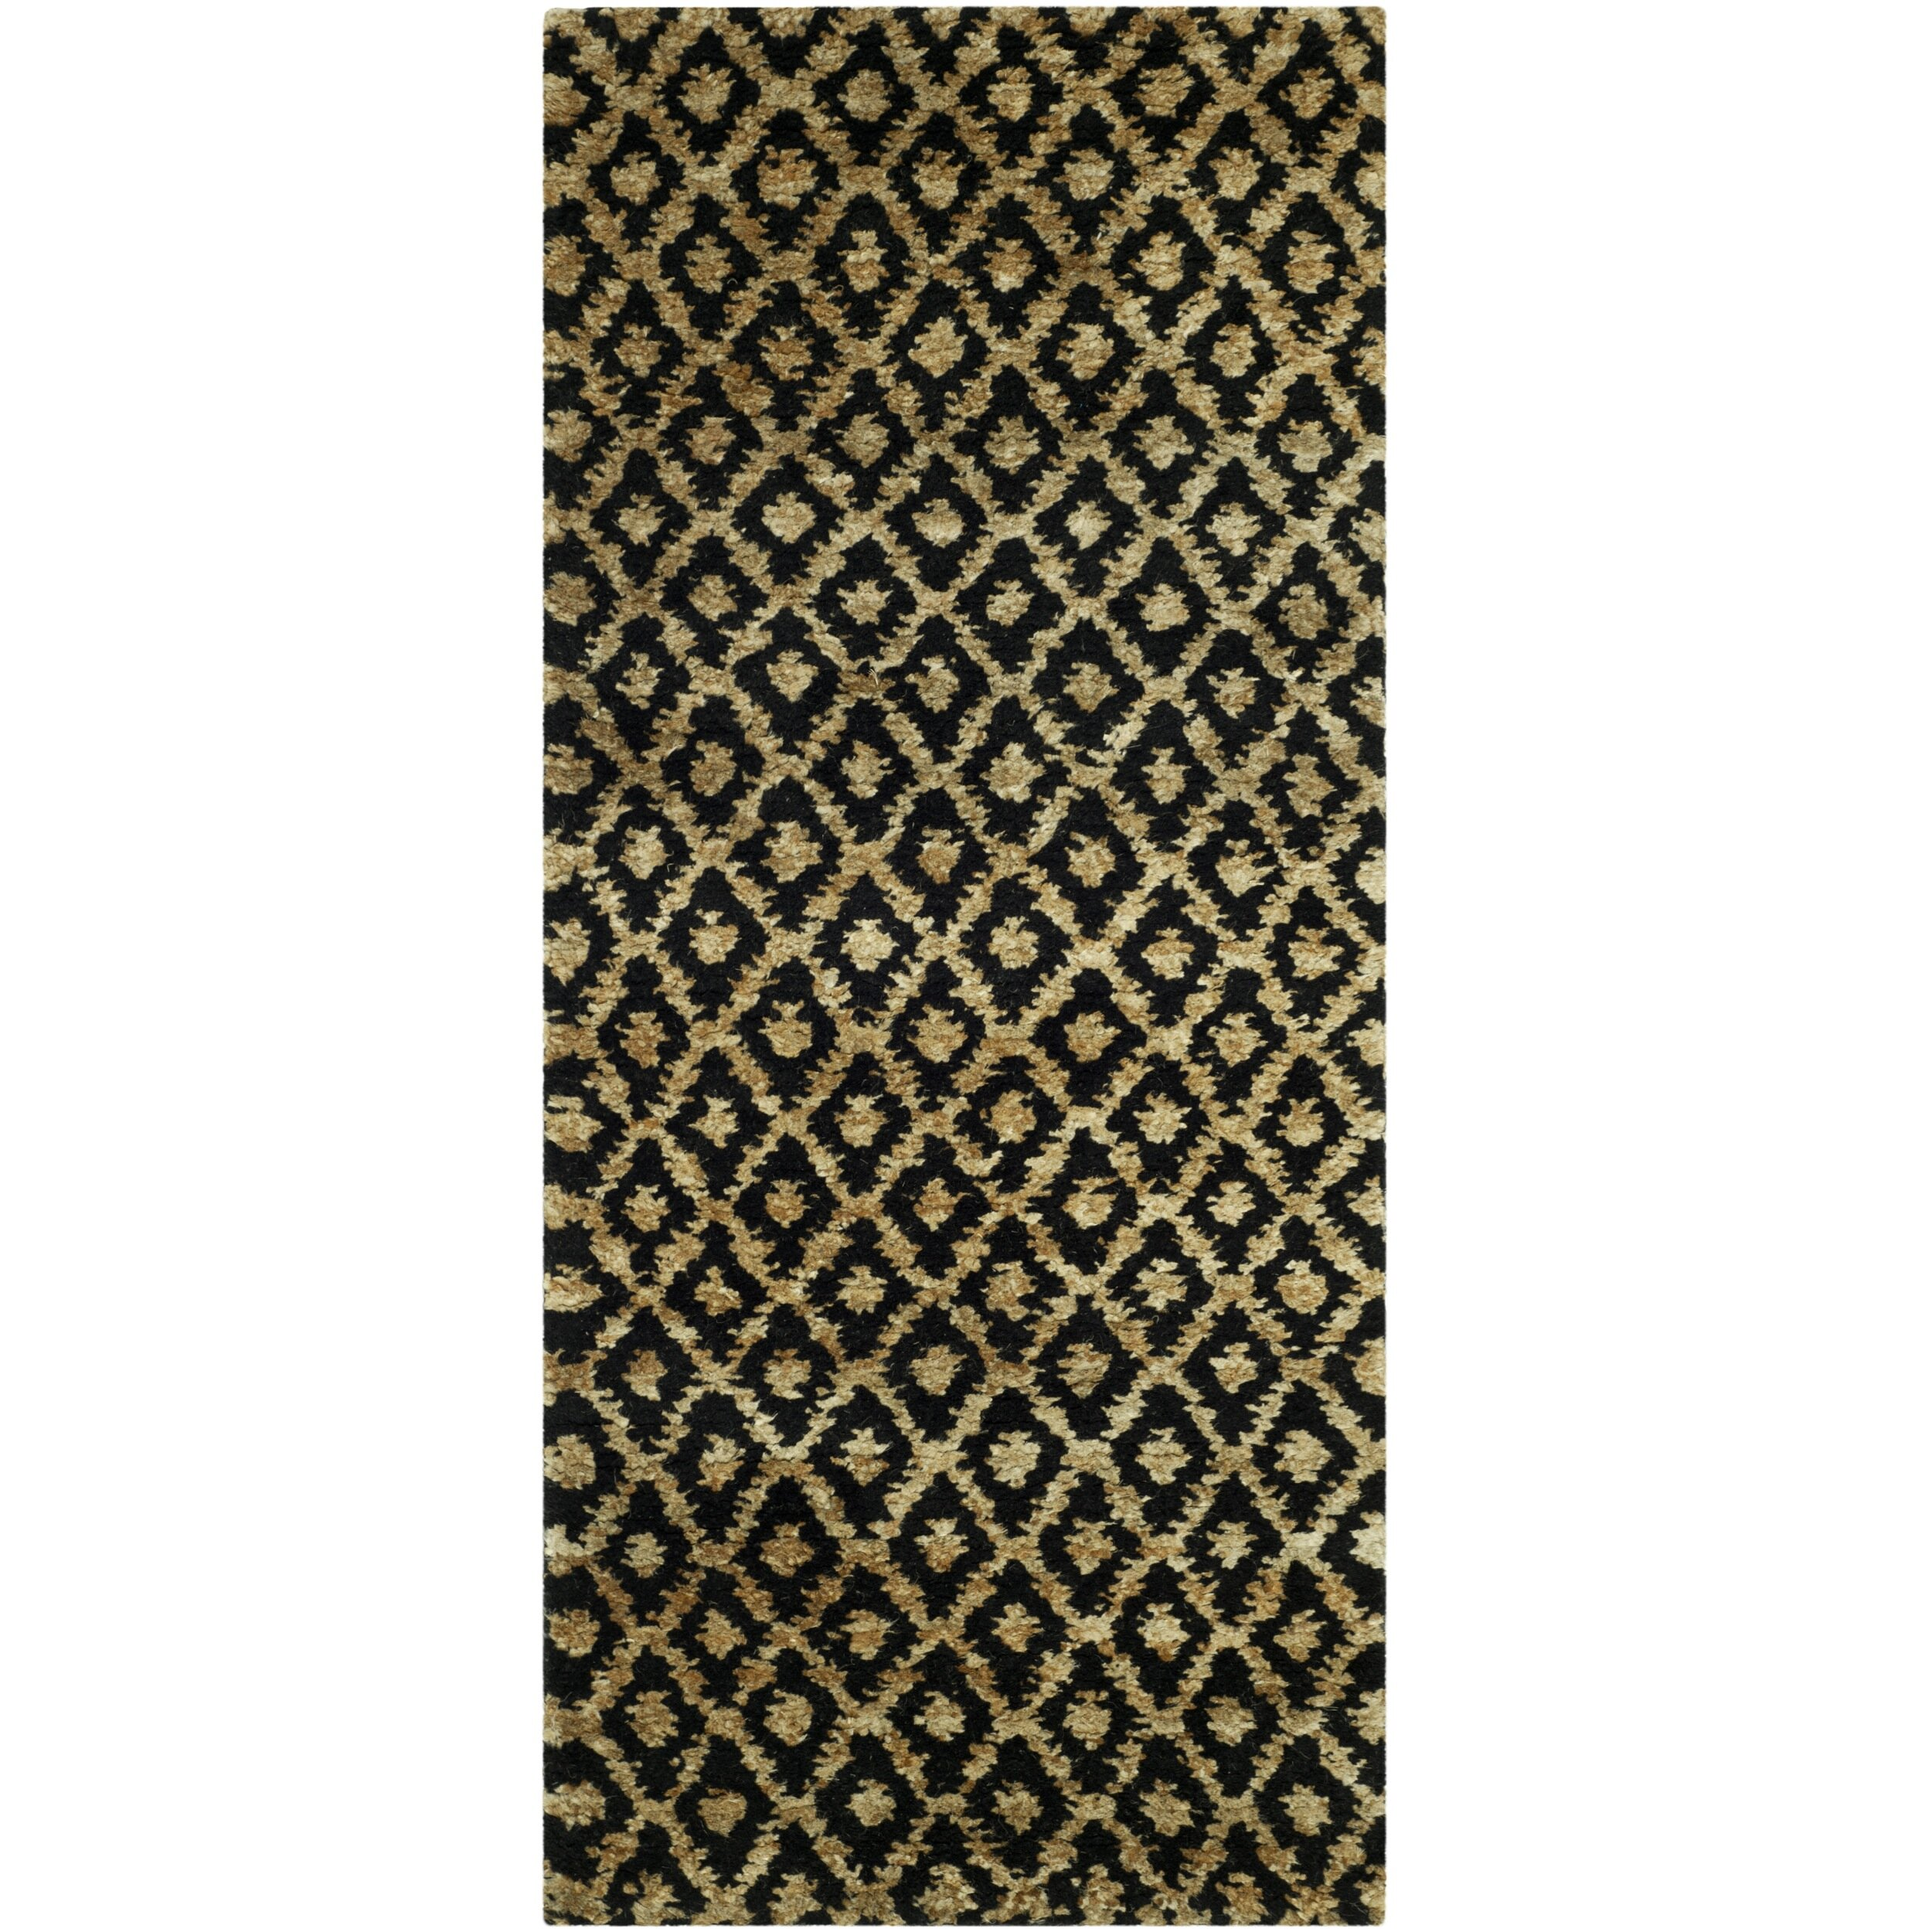 d cor rugs runner area rugs safavieh sku fv14526